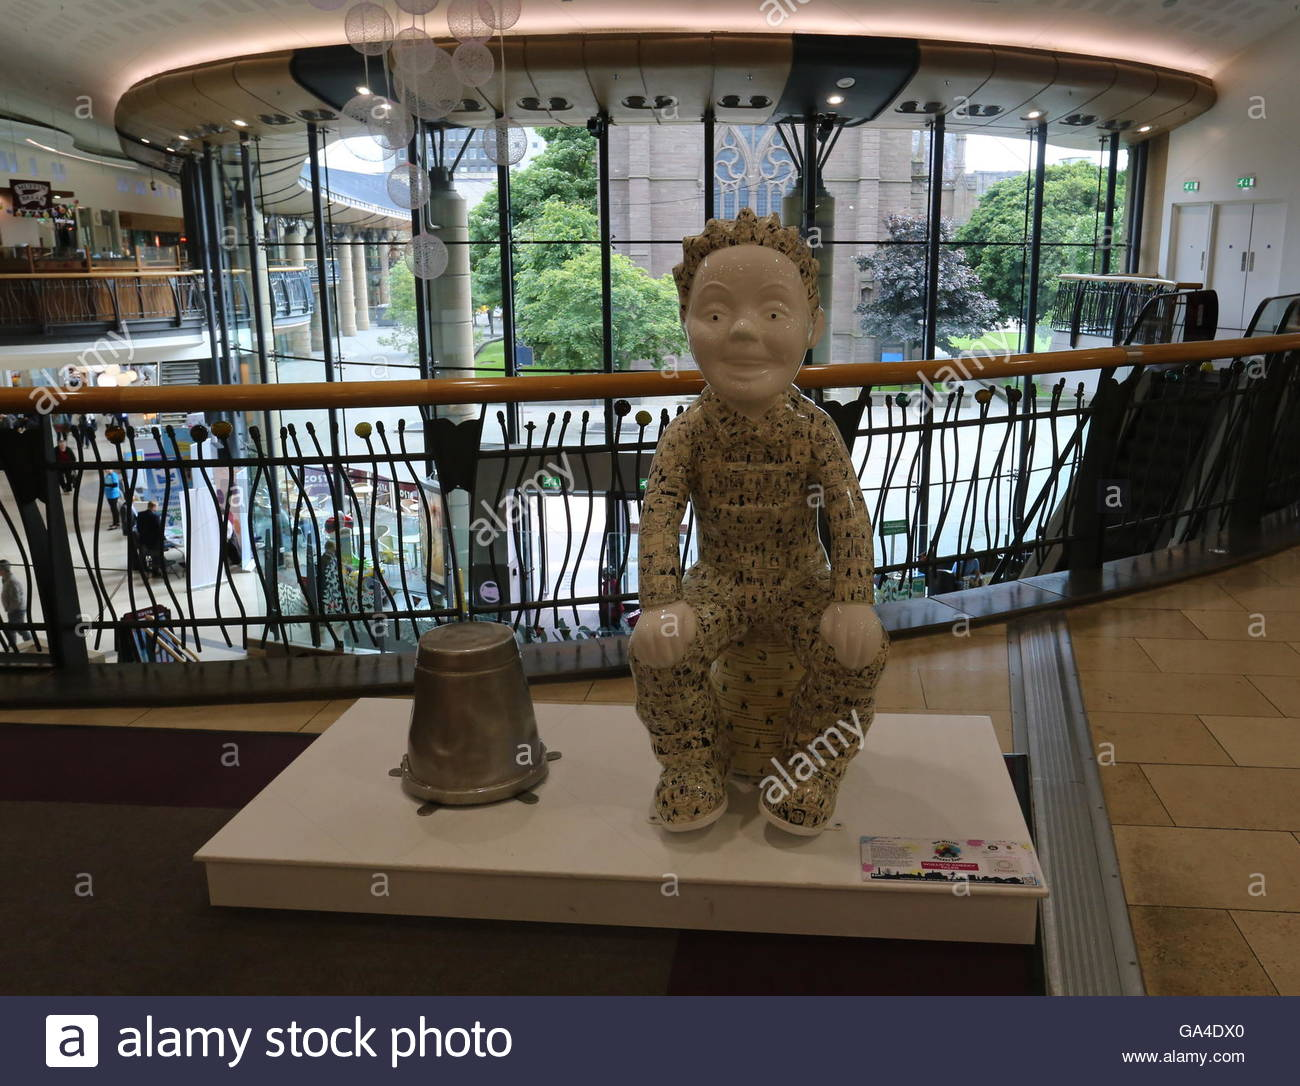 Wullie's Cheeky Tales by Nicki Bradwell on Oor Wullie Bucket Trail at Overgate Centre Dundee Scotland  June 2016 Stock Photo